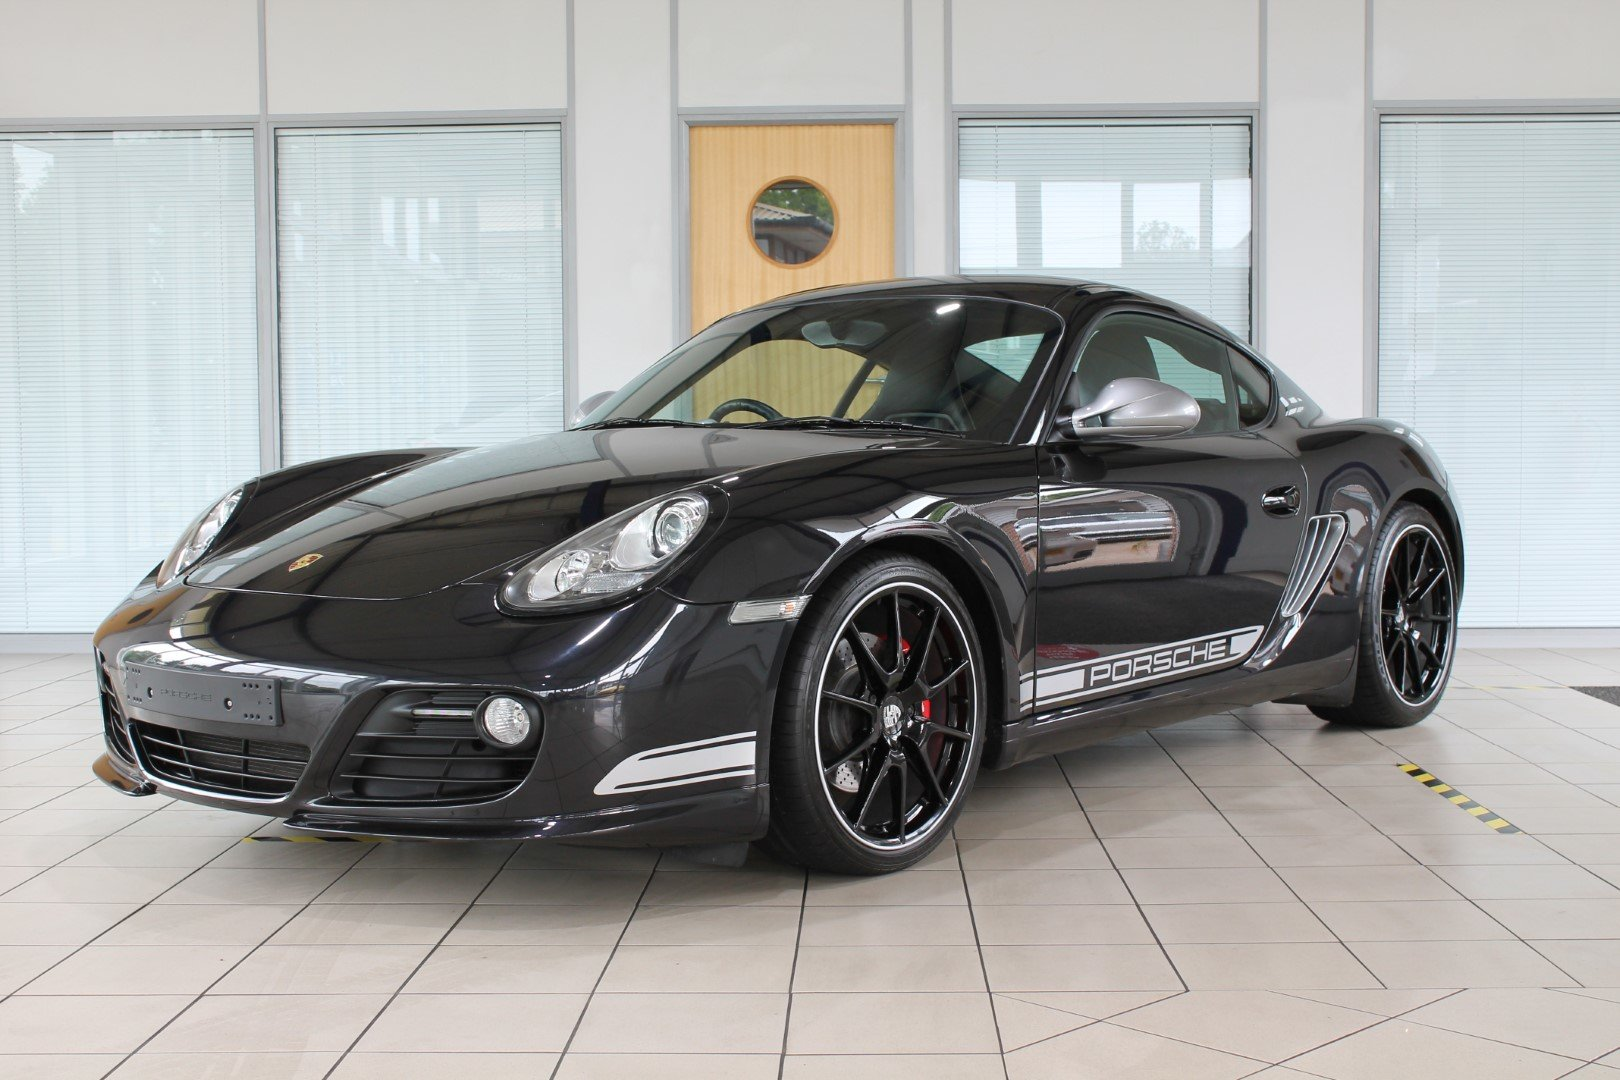 2011 Porsche Cayman (987) 3.4 R PDK For Sale (picture 1 of 6)